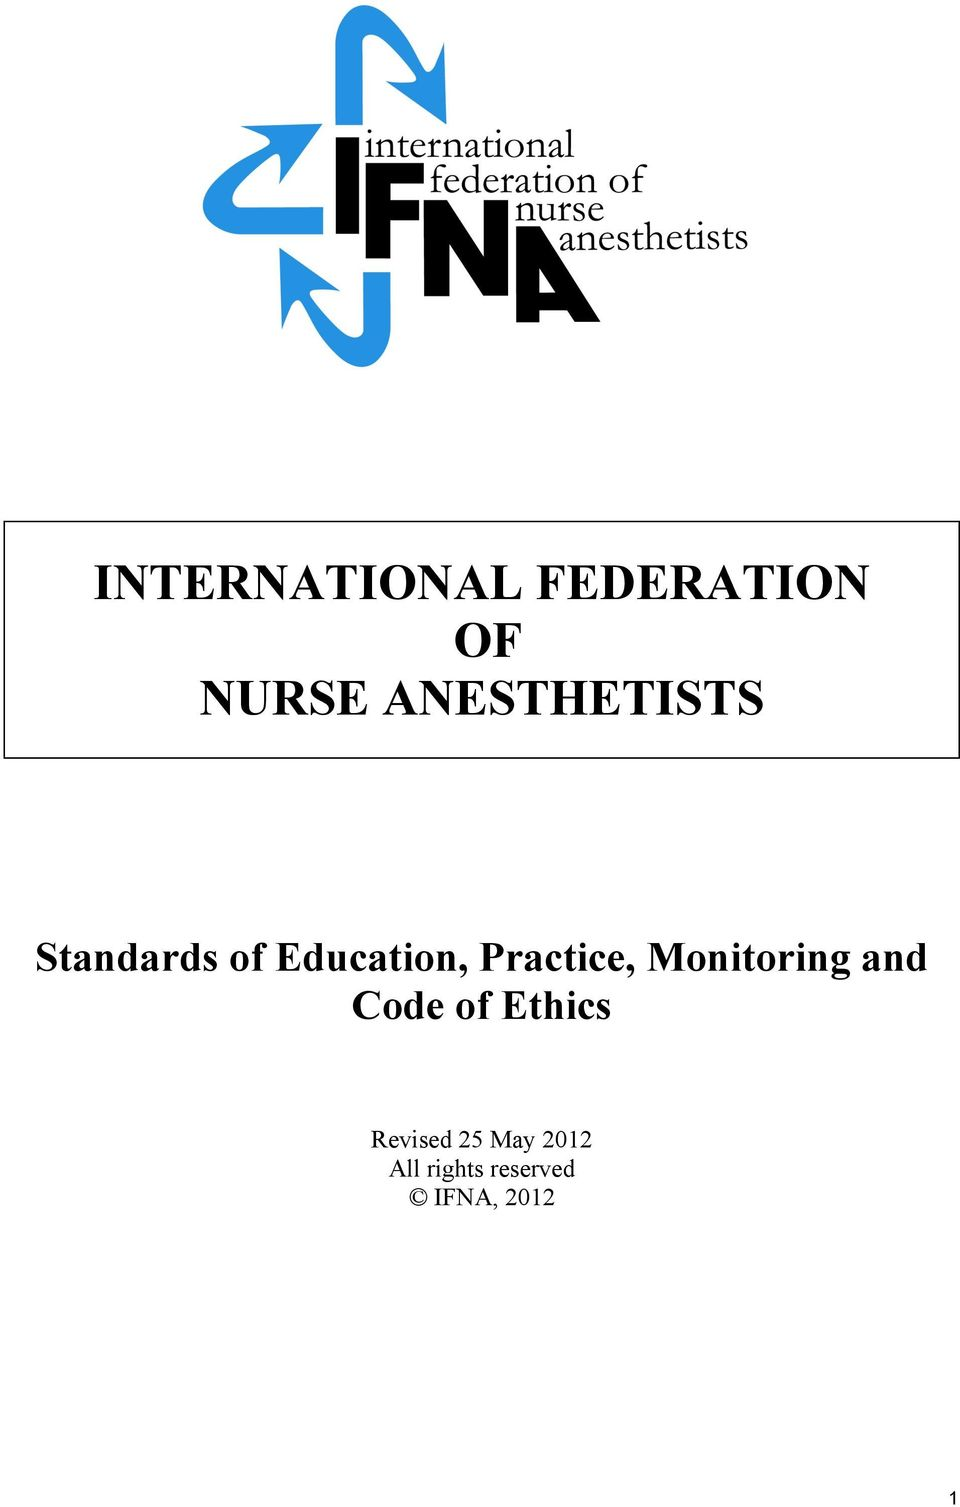 Practice, Monitoring and Code of Ethics